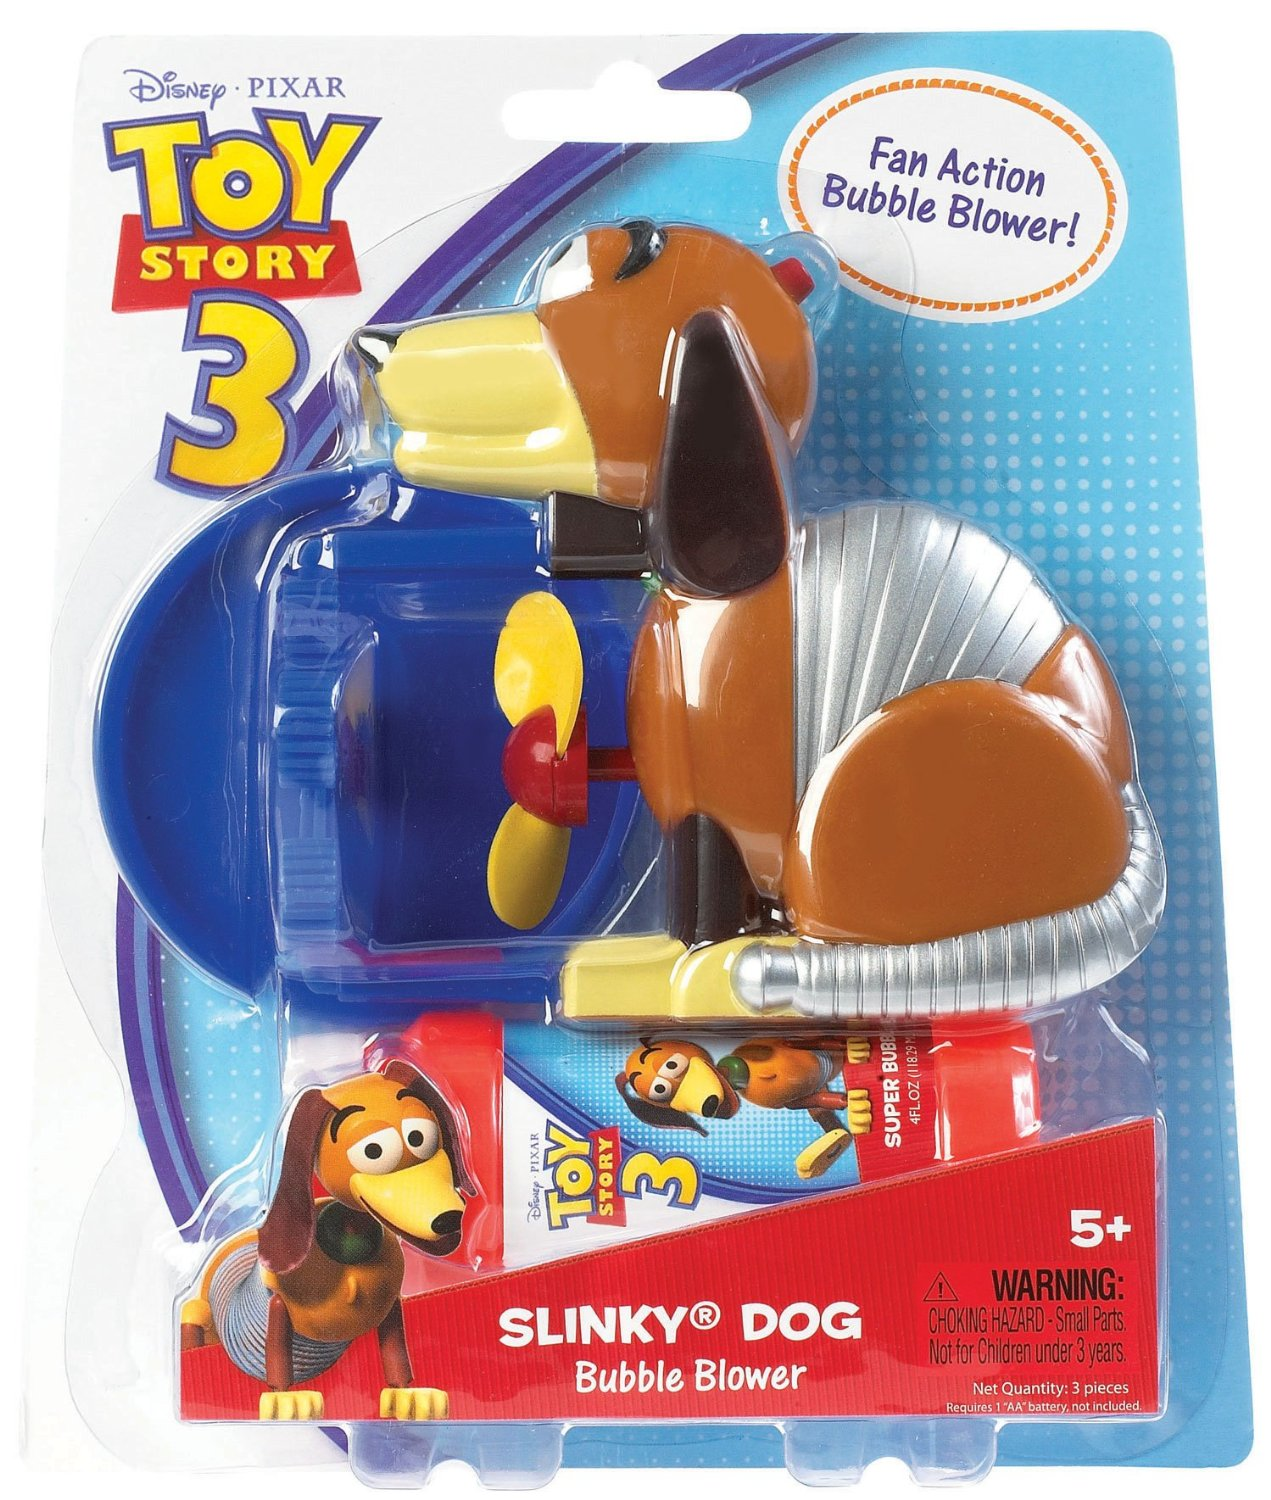 Disney Pixar Toy Story Bubble Blower Slinky Dog